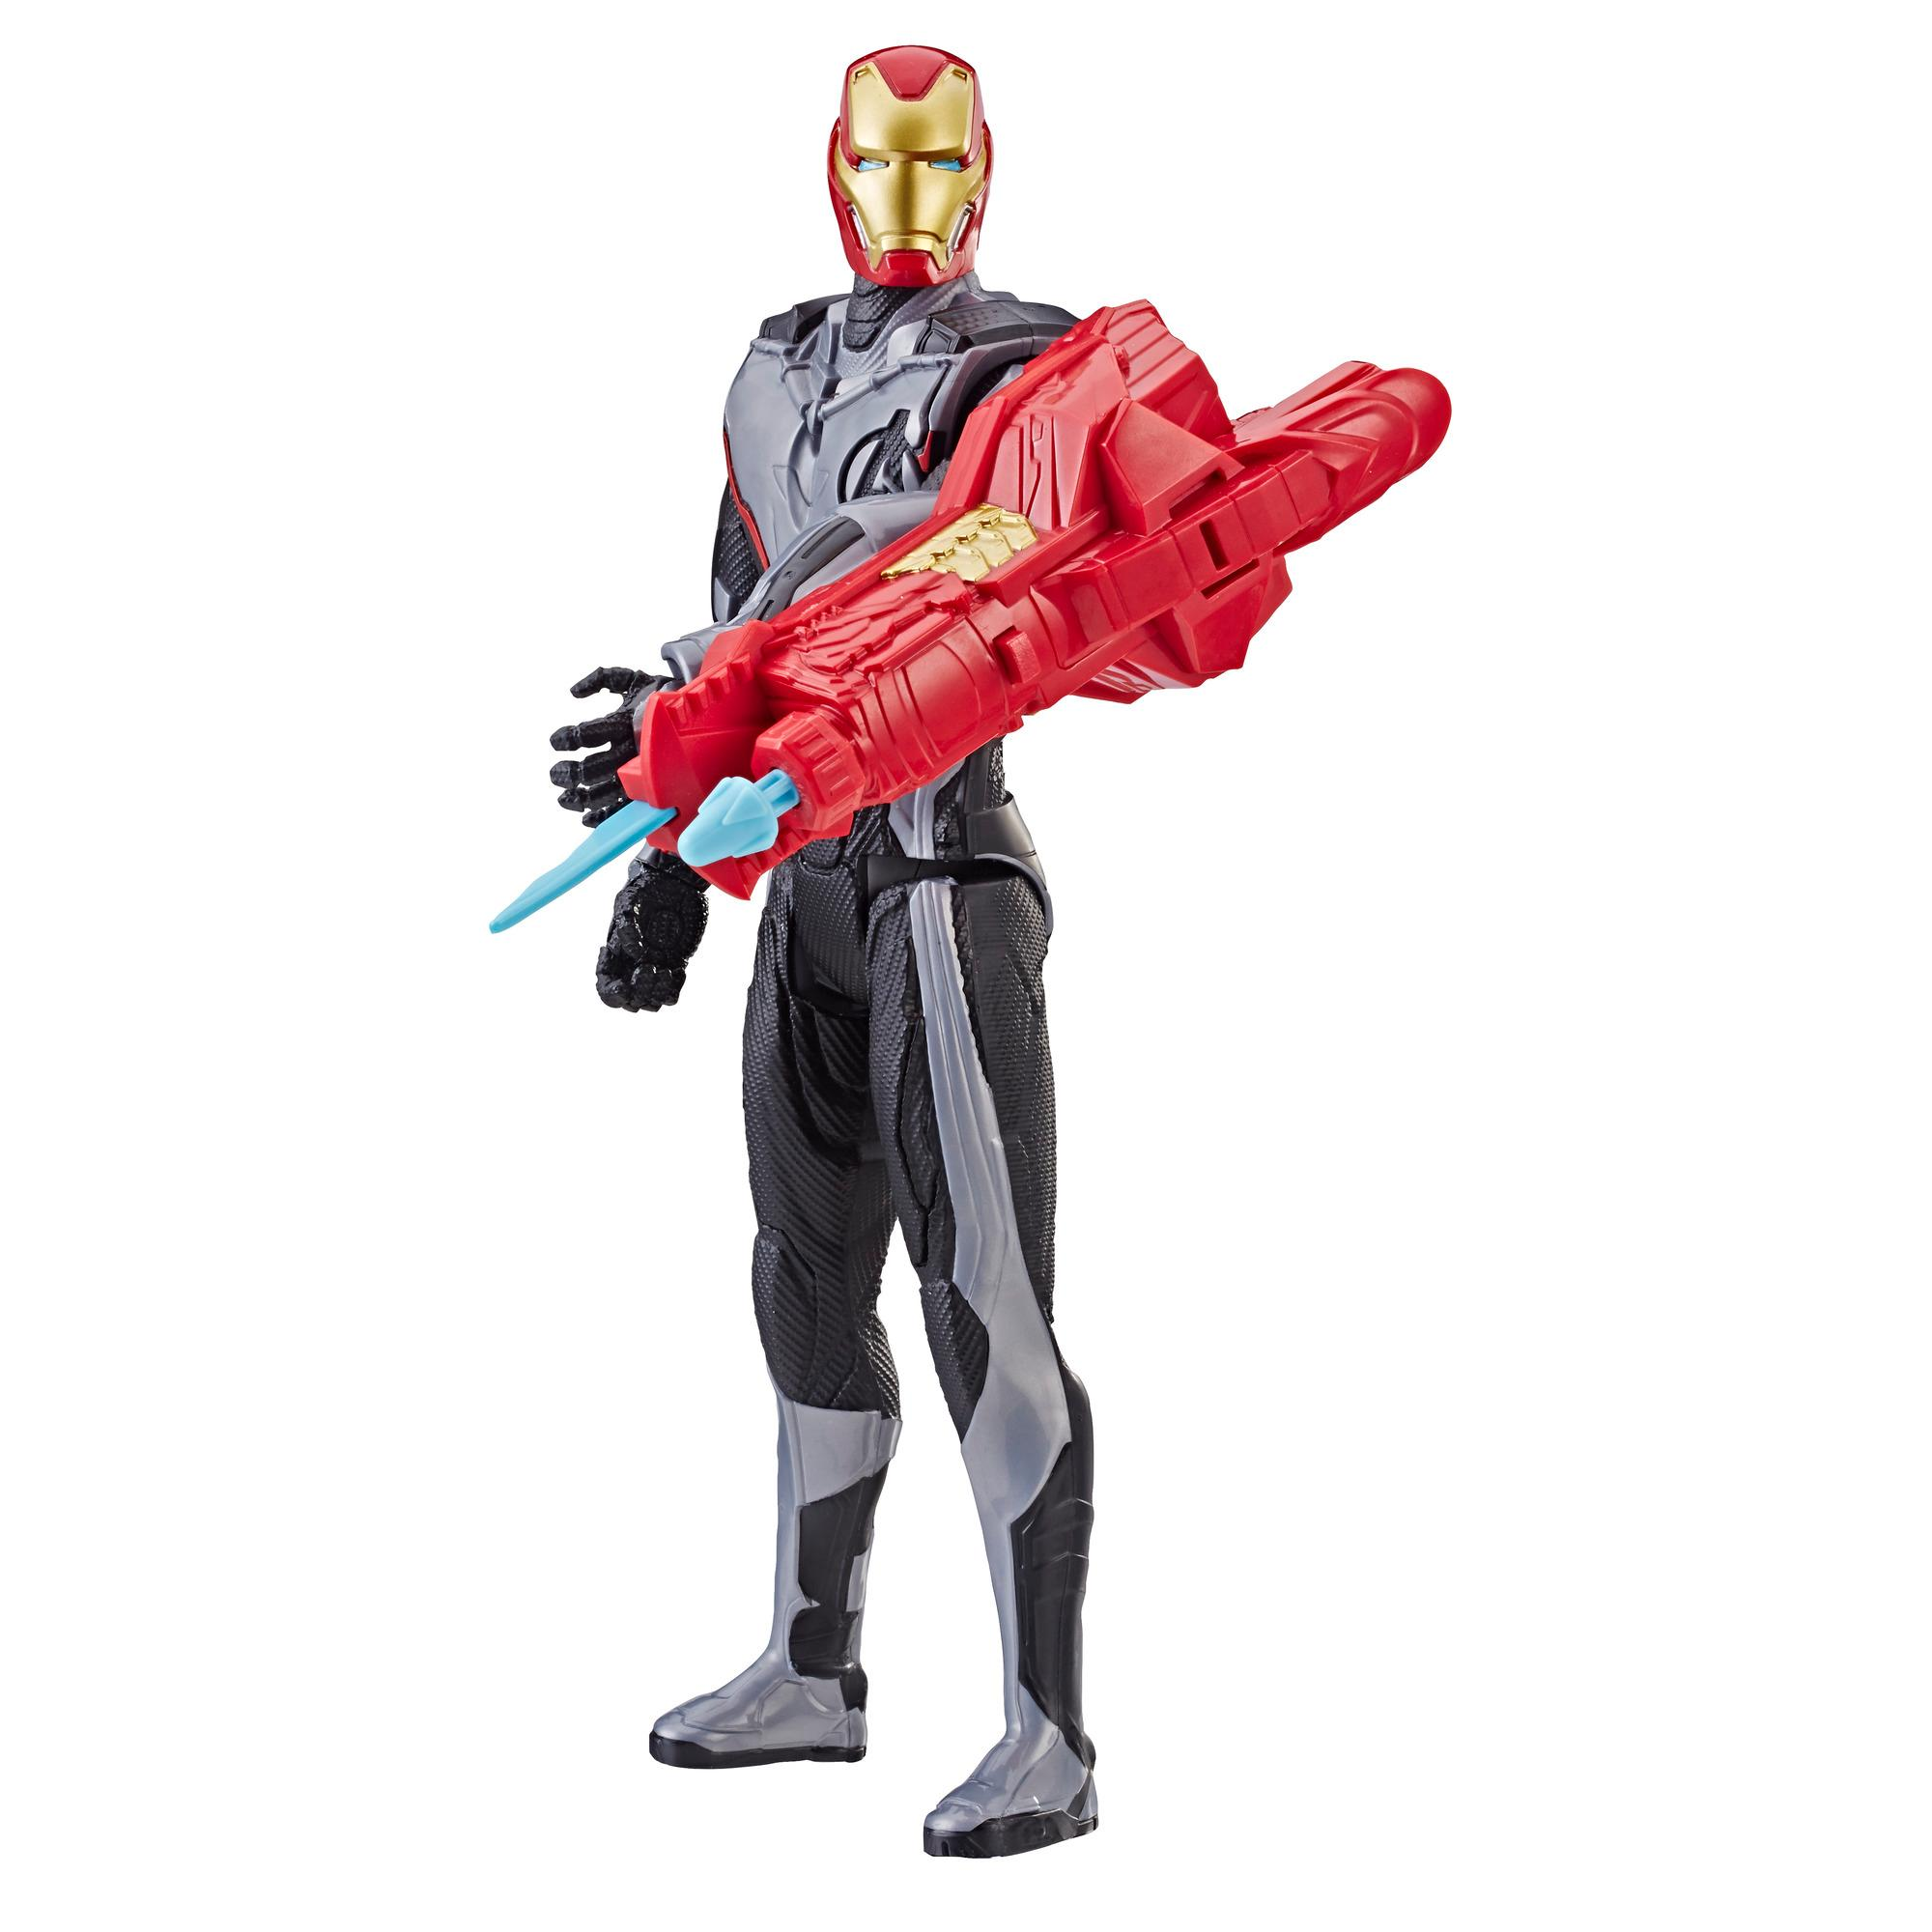 Avengers Titan Hero Power FX 2.0 Iron Man